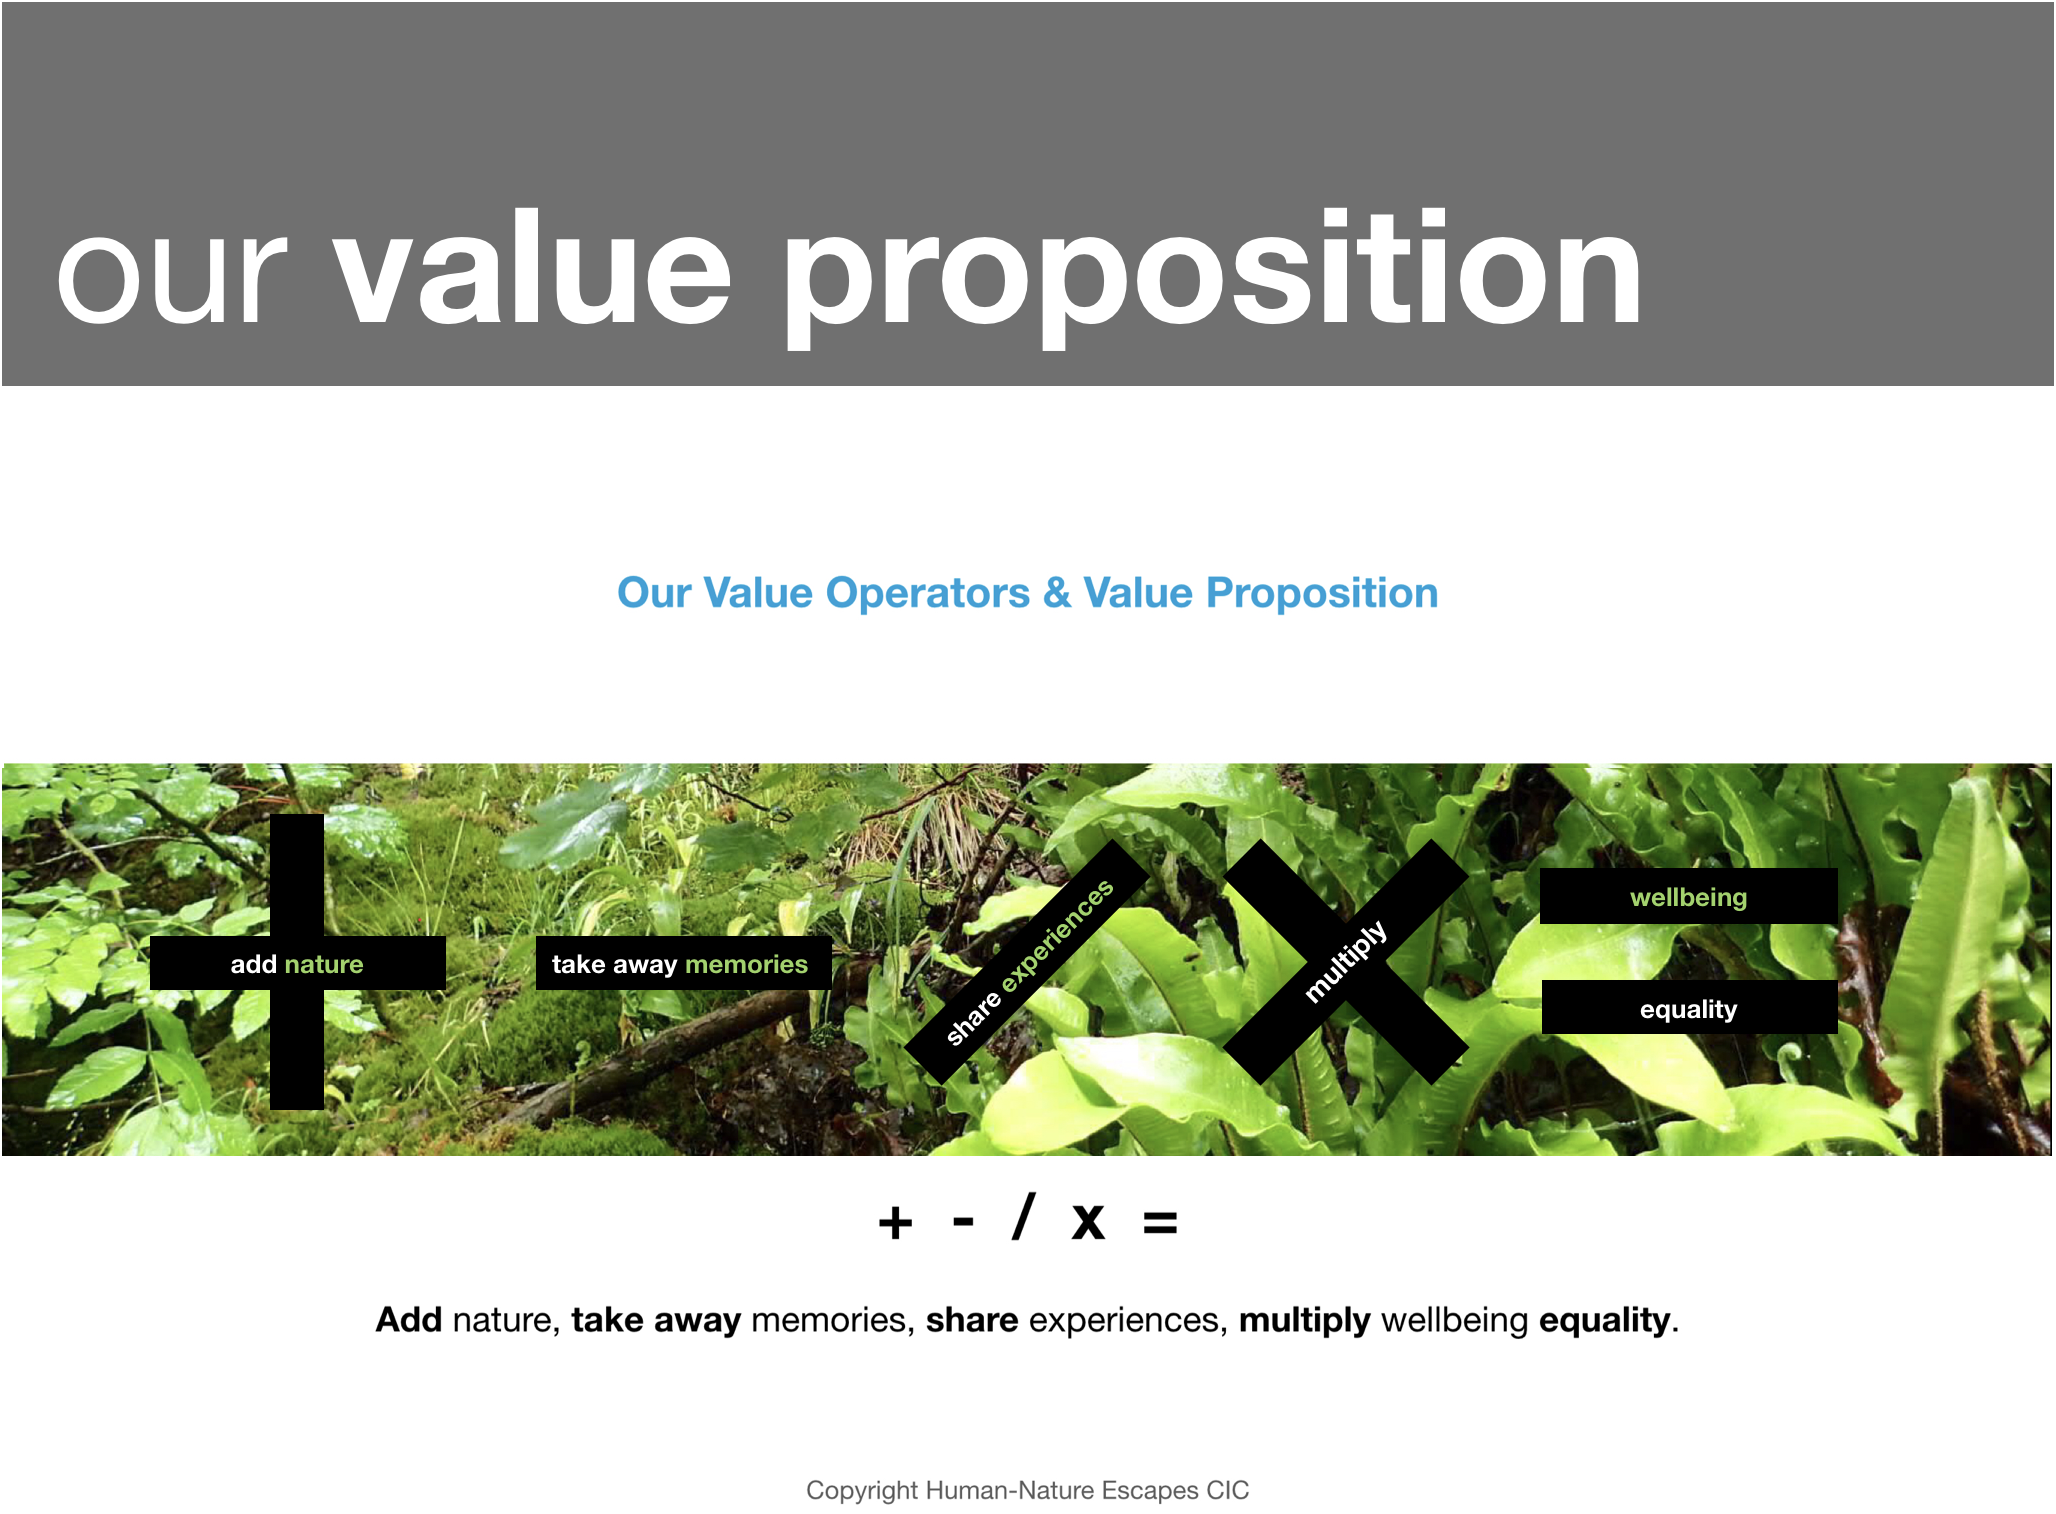 Human-Nature - Our Value Proposition